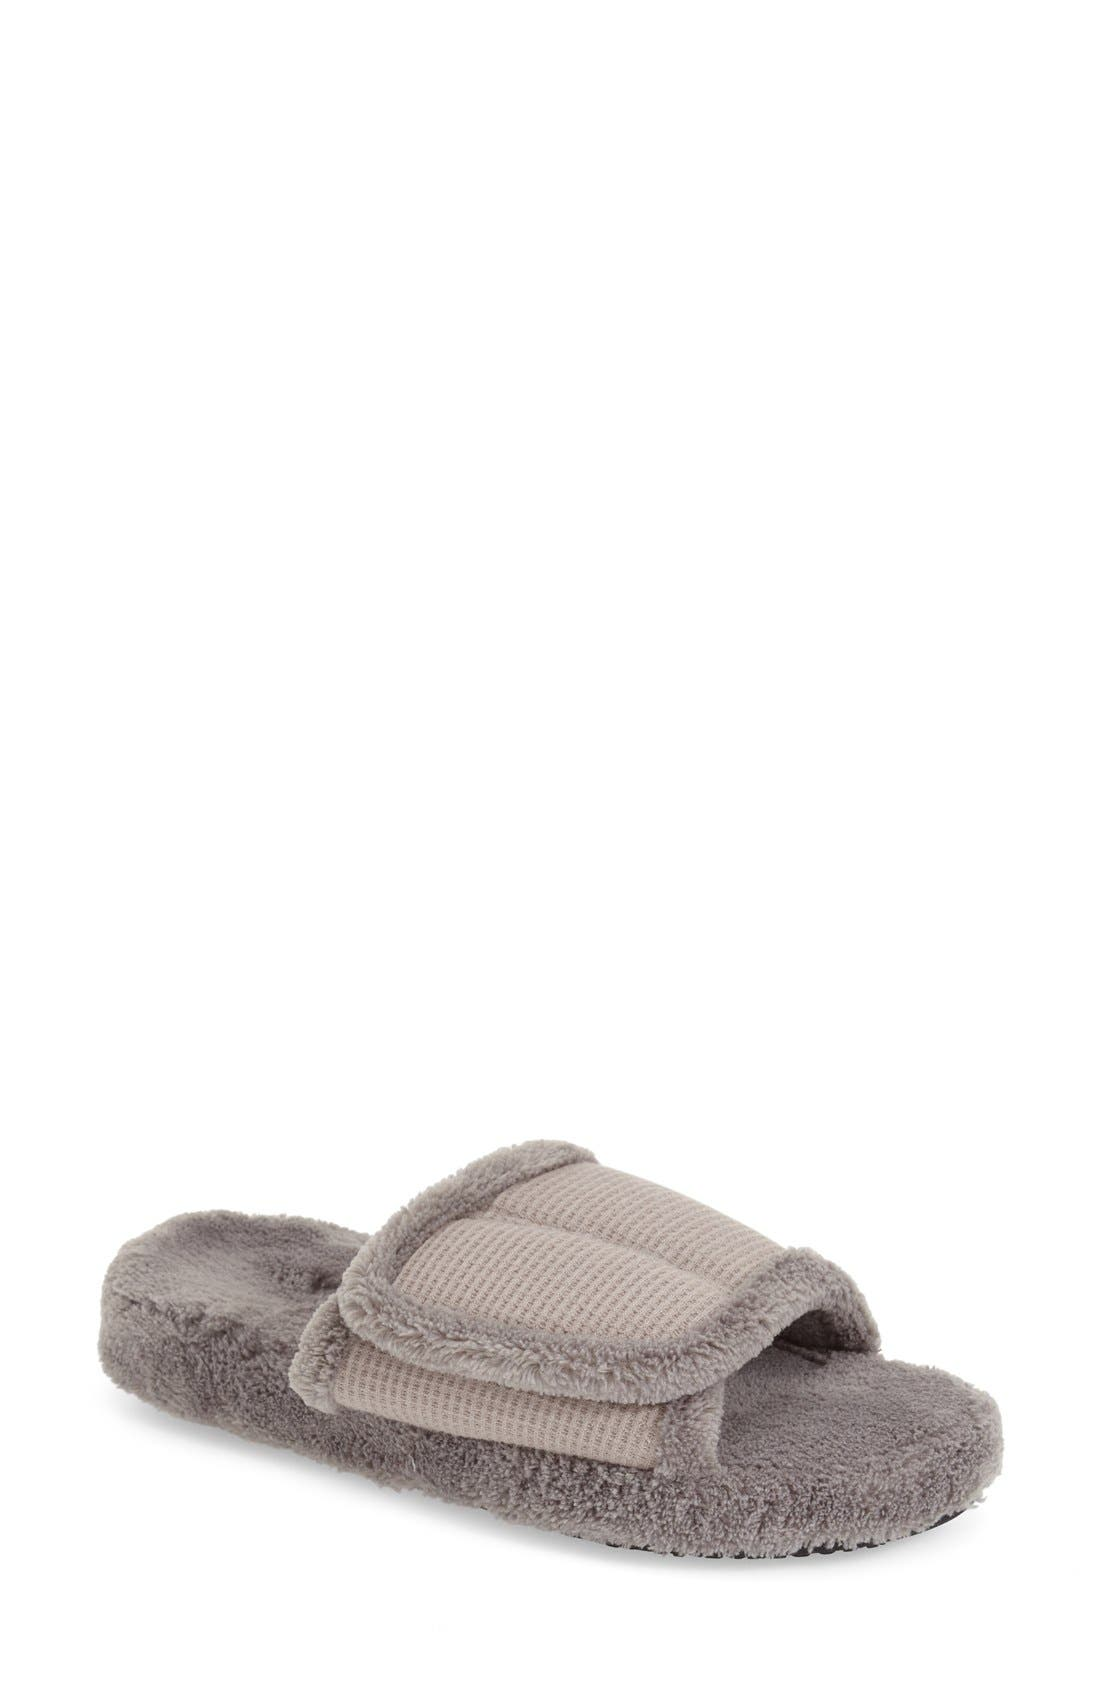 ACORN 'Waffle Spa Slide' Slipper in Grey